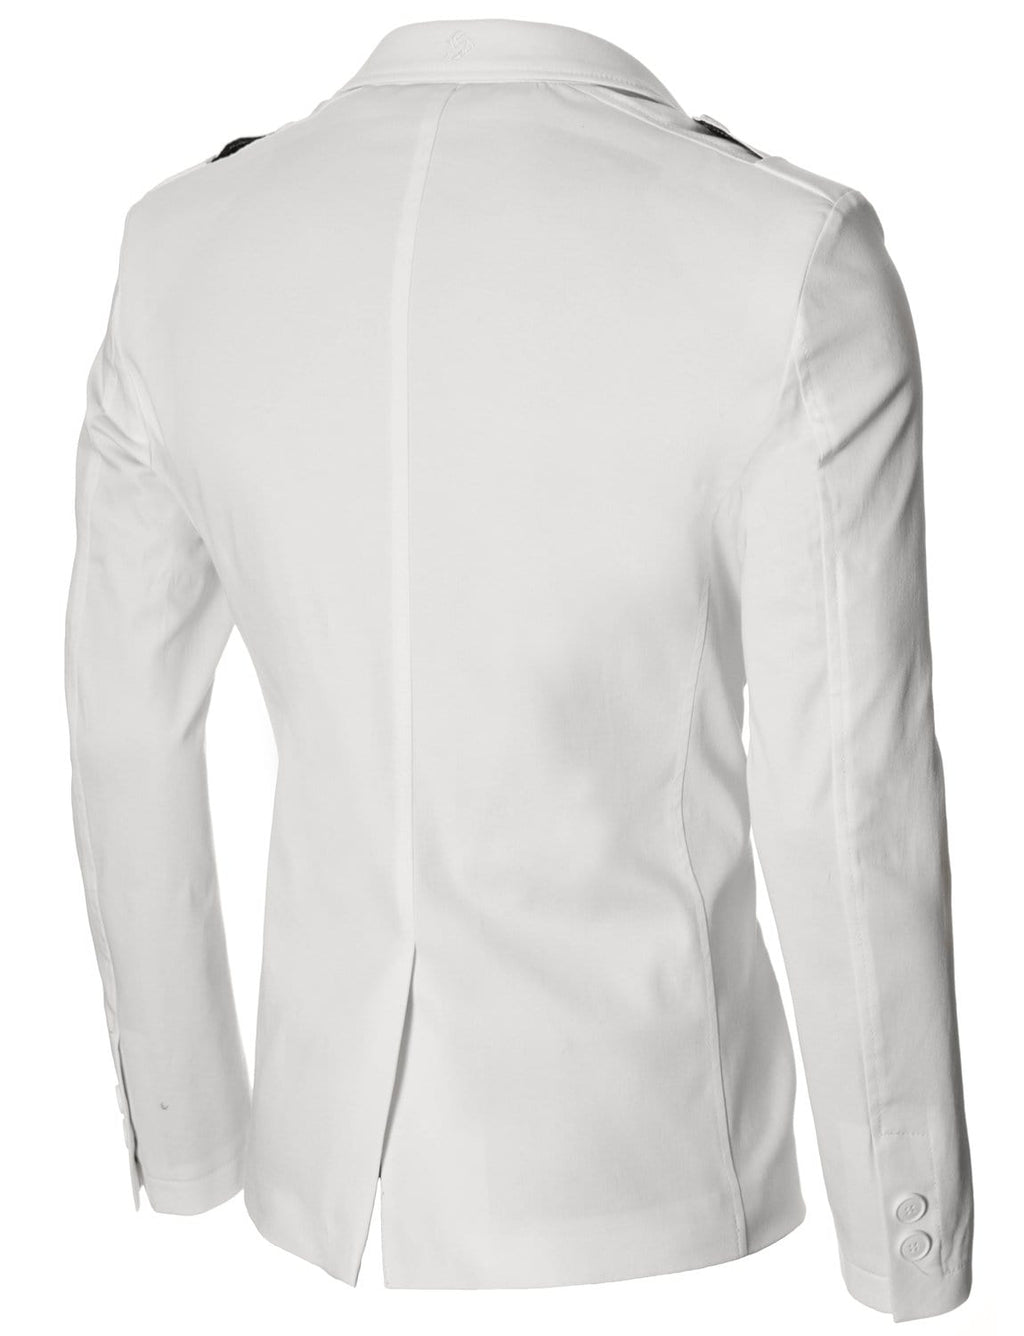 Mens slim fit casual blazer white (MOD14518B)